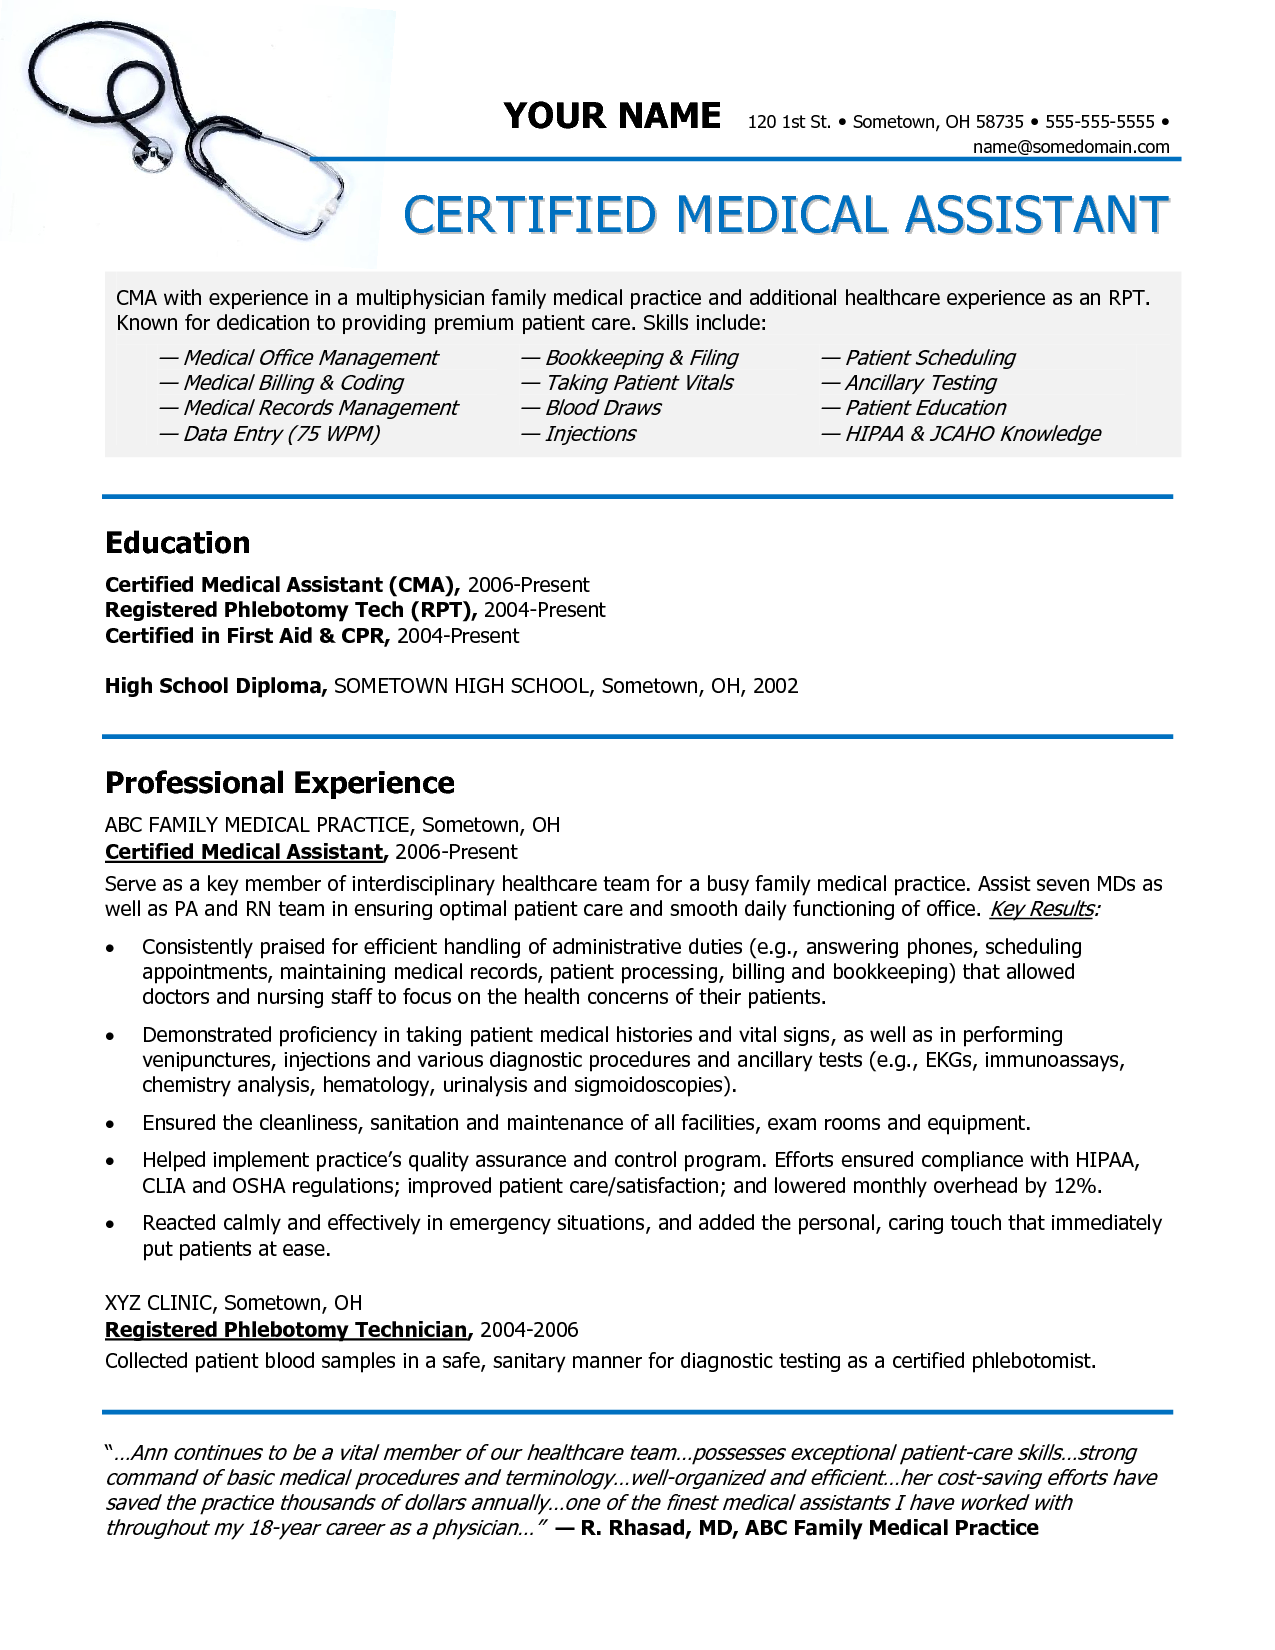 medical assistant resume entry level examples 18 Medical Assistant ...